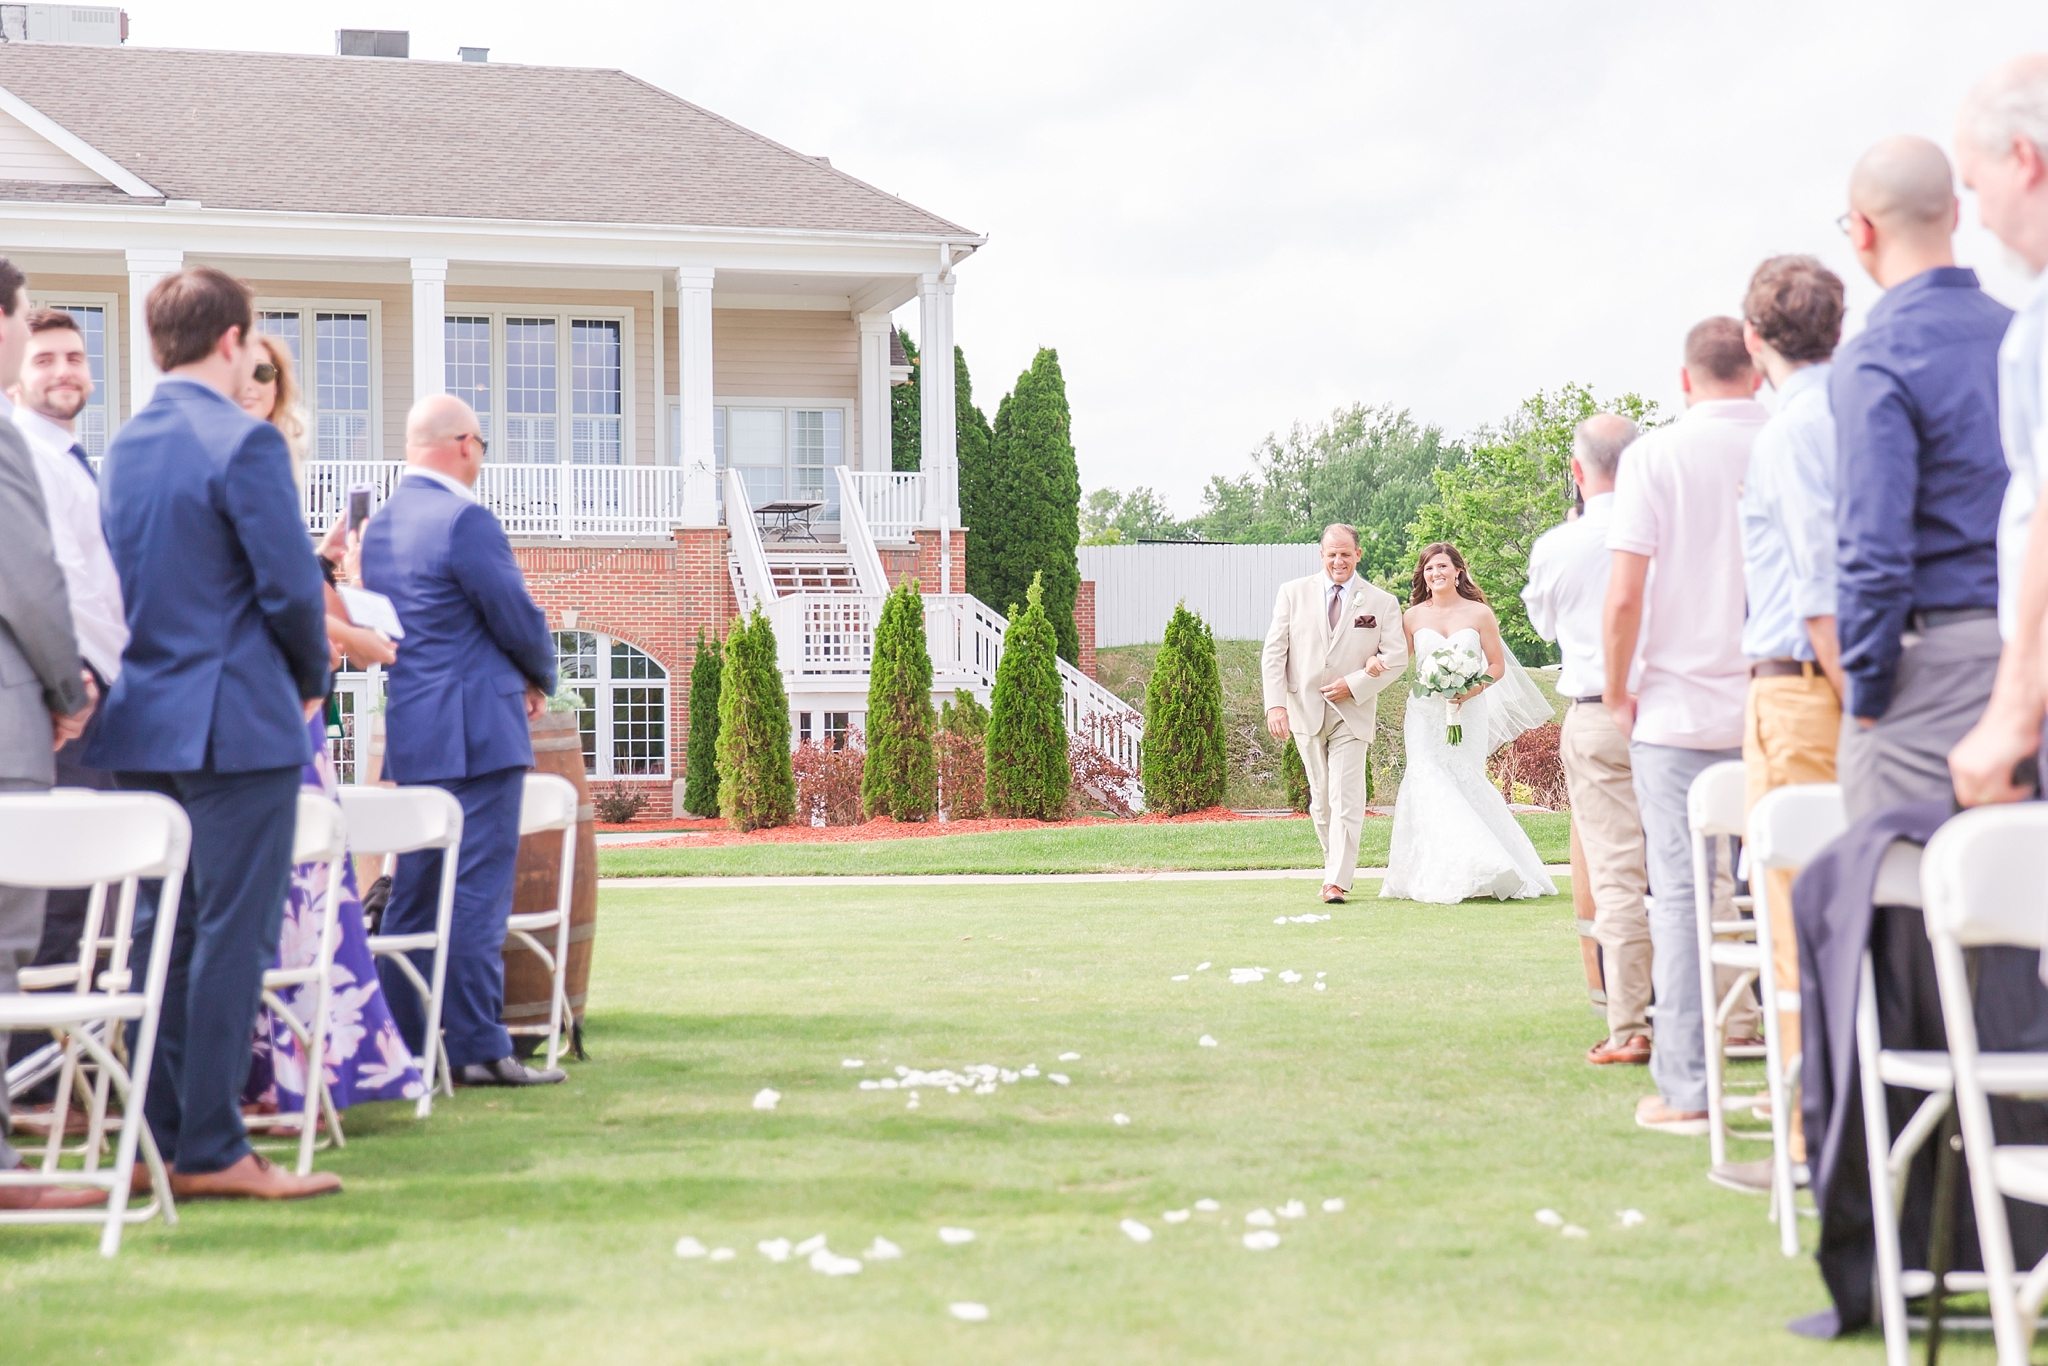 candid-timeless-wedding-photos-at-the-captains-club-in-grand-blanc-michigan-by-courtney-carolyn-photography_0034.jpg